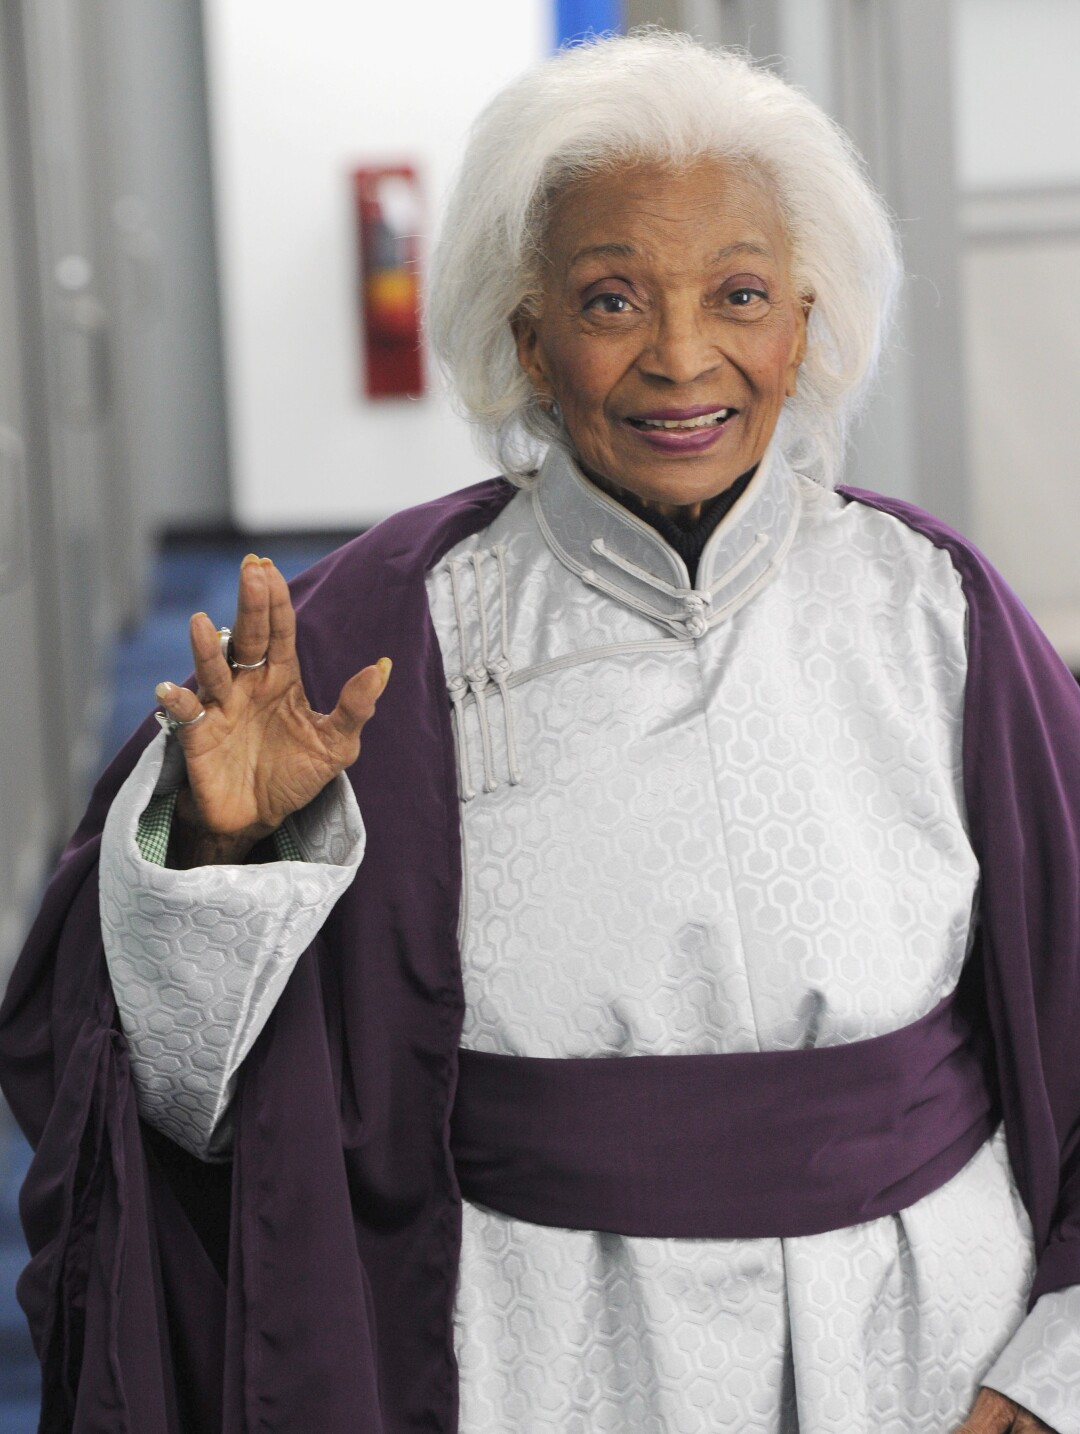 """A woman with white hair smiles and spreads her fingers in a """"Star Trek"""" symbol"""